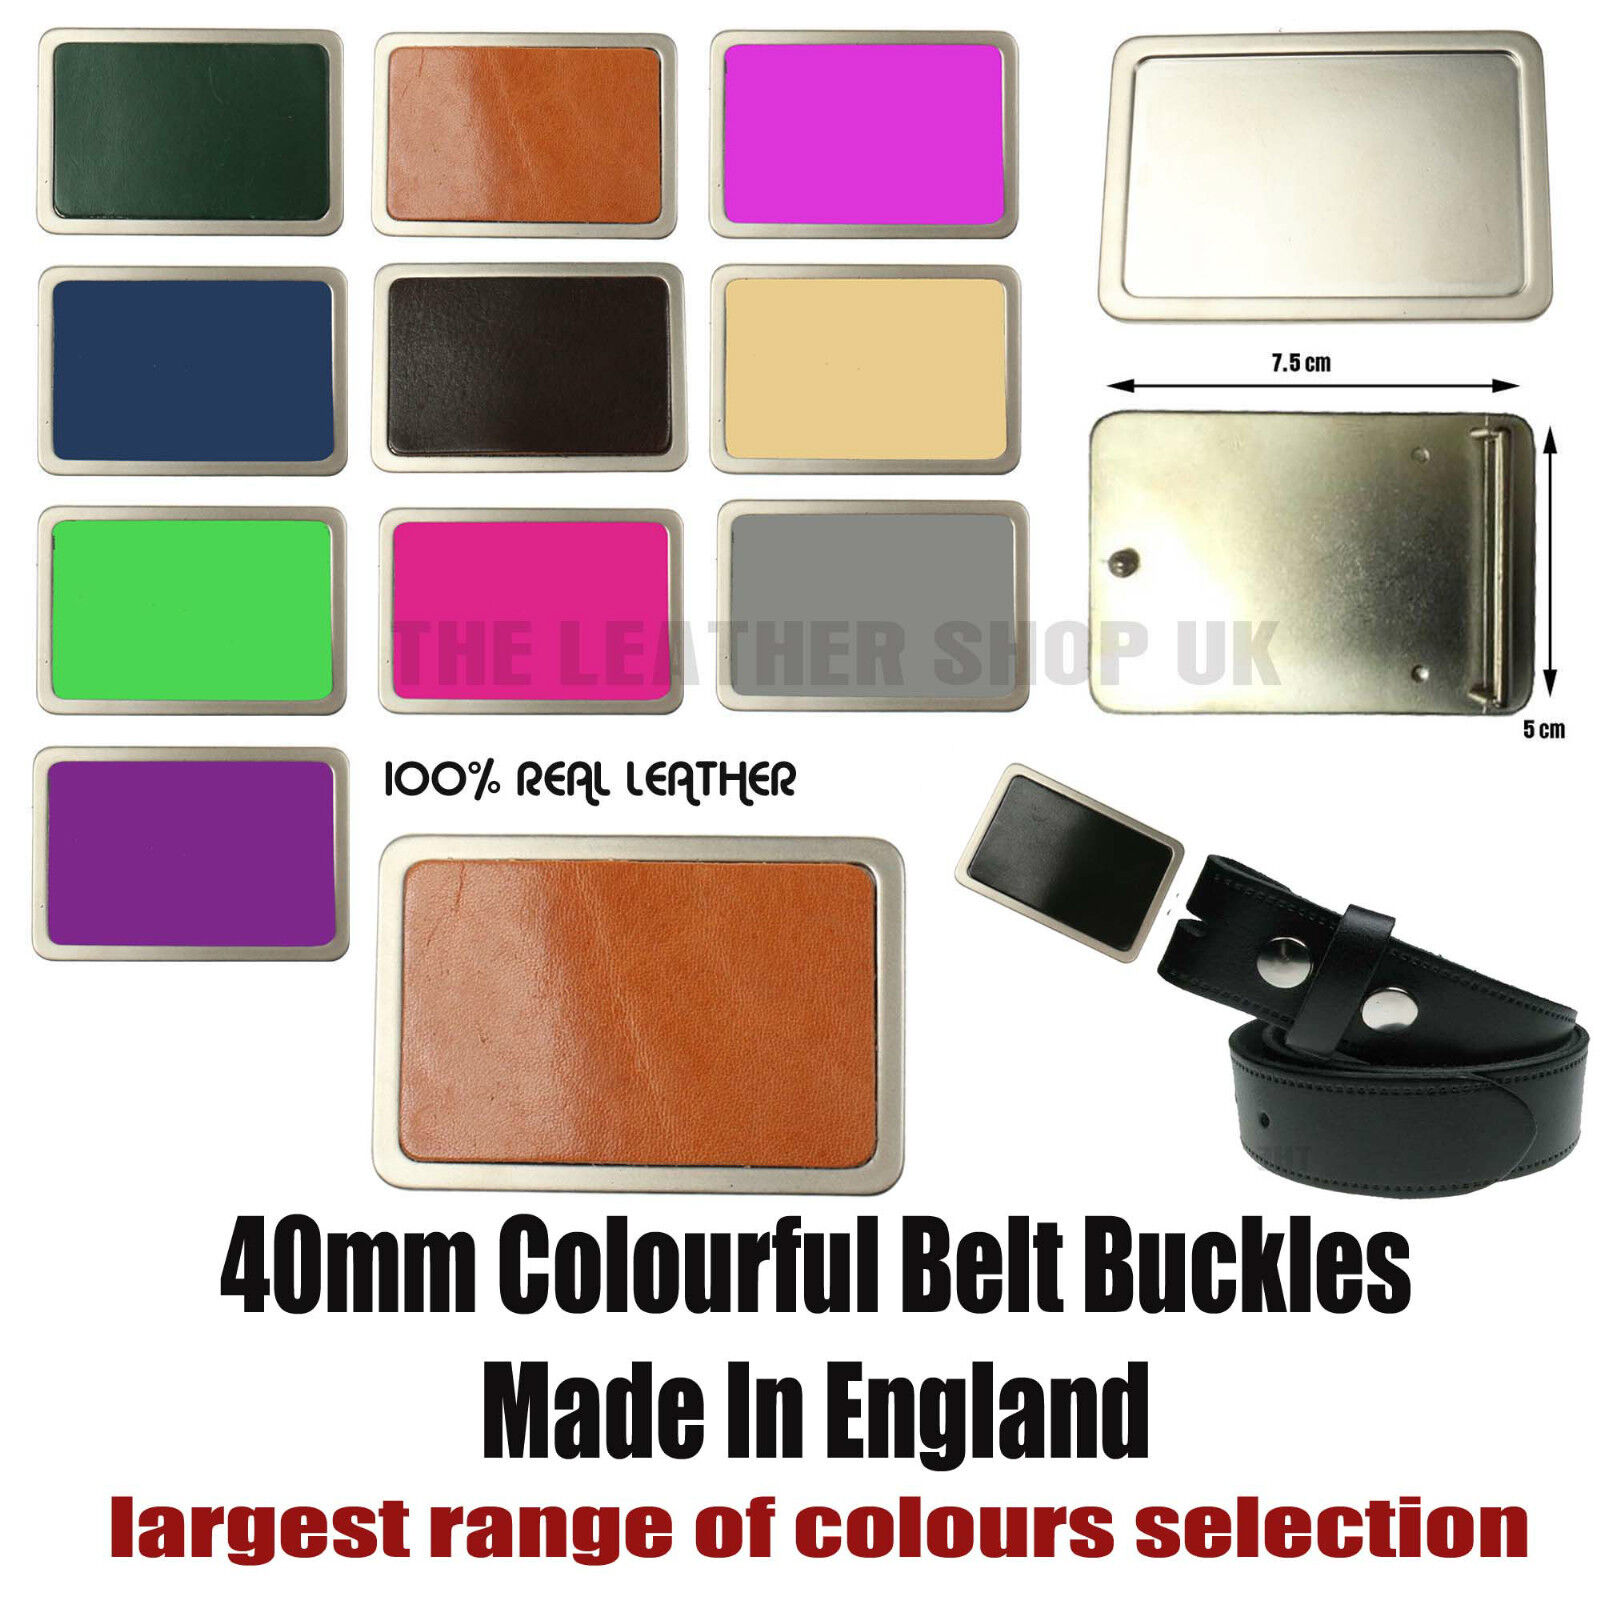 40mm New Best High Quality Removable Colourful Leather Belt Buckles Made In UK